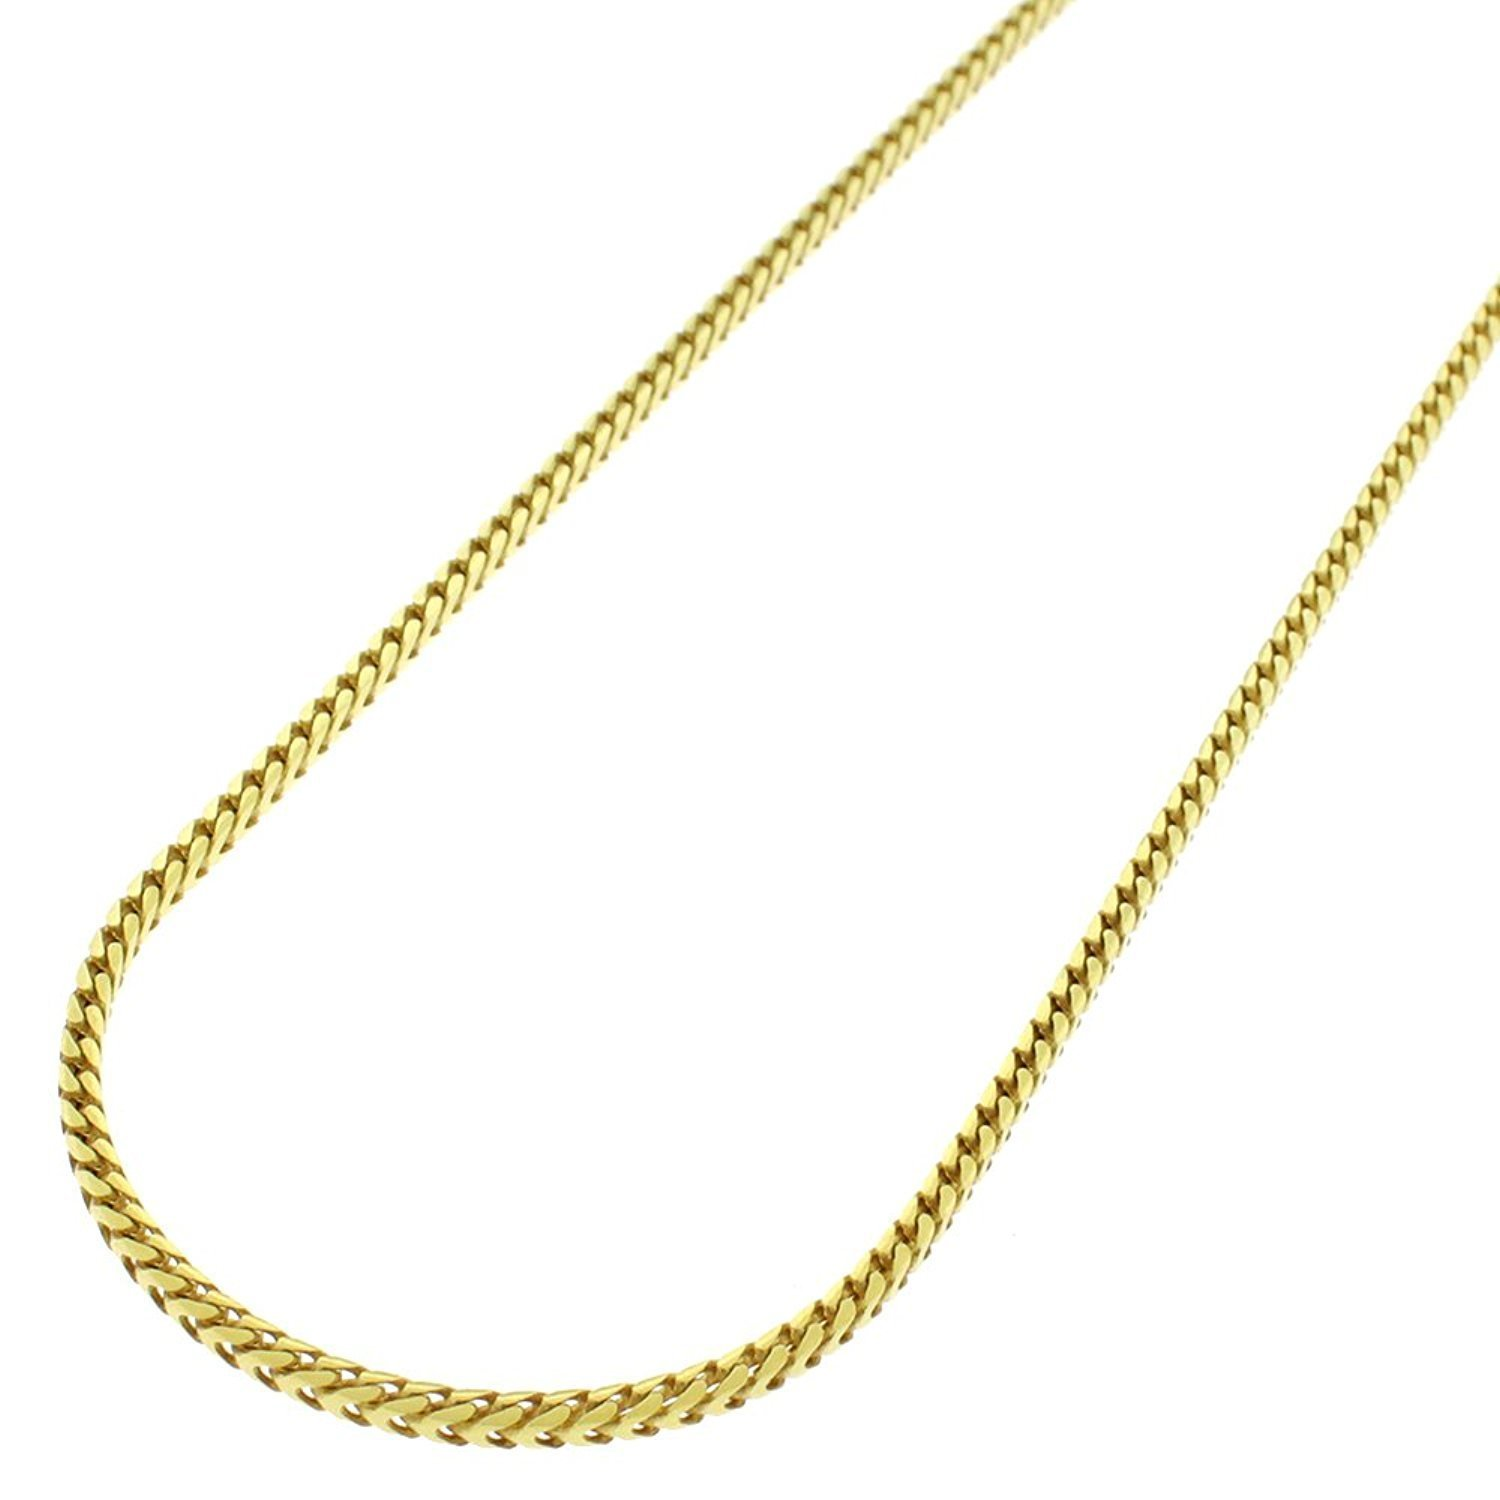 14k Yellow Gold 1.5mm Solid Franco Square Box Link Necklace Chain 16'' - 24'' (24) by In Style Designz (Image #1)